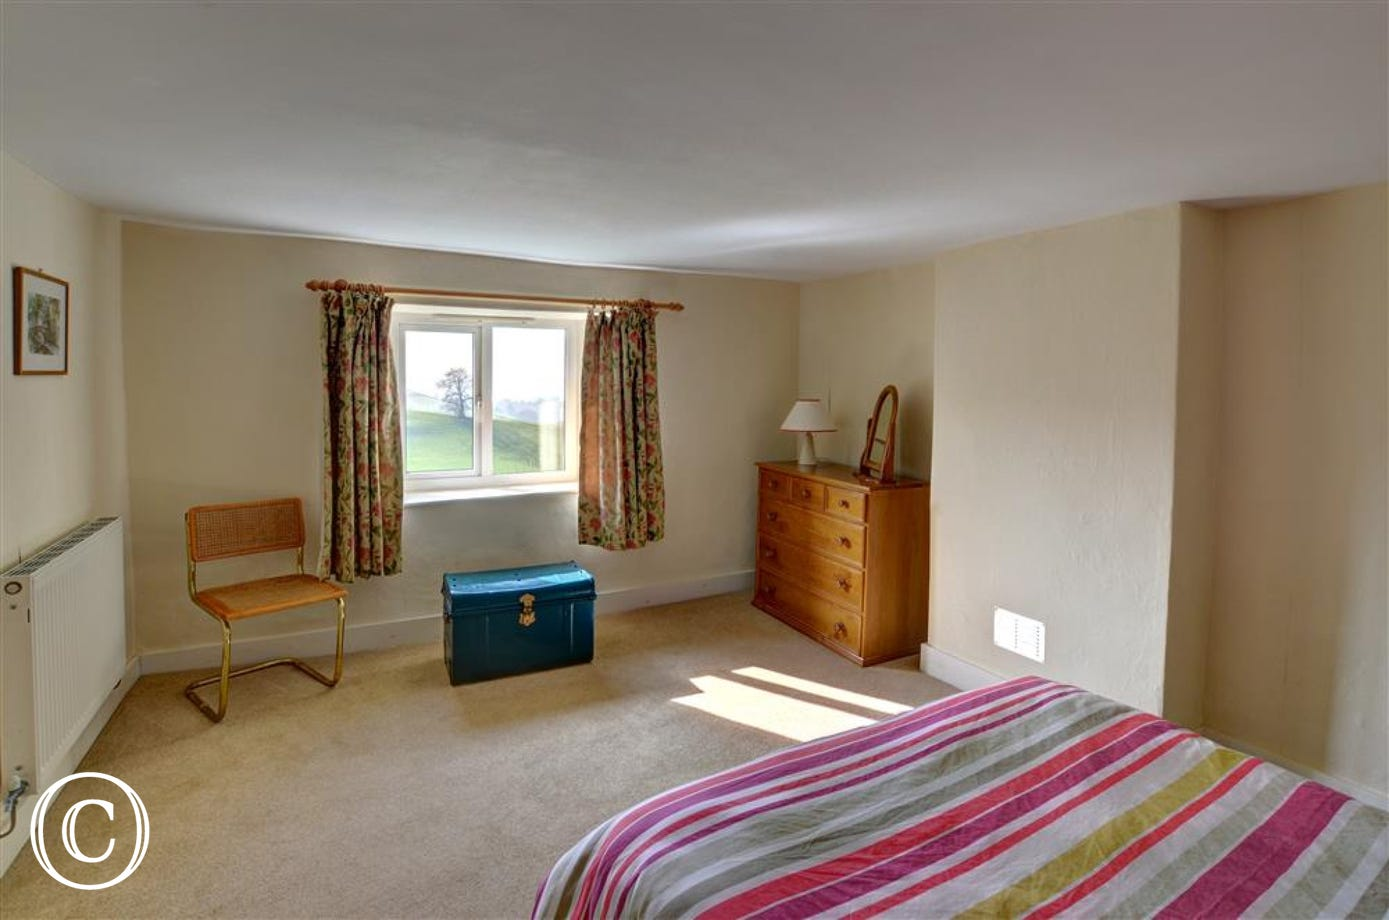 The spacious double bedroom has a lovely view